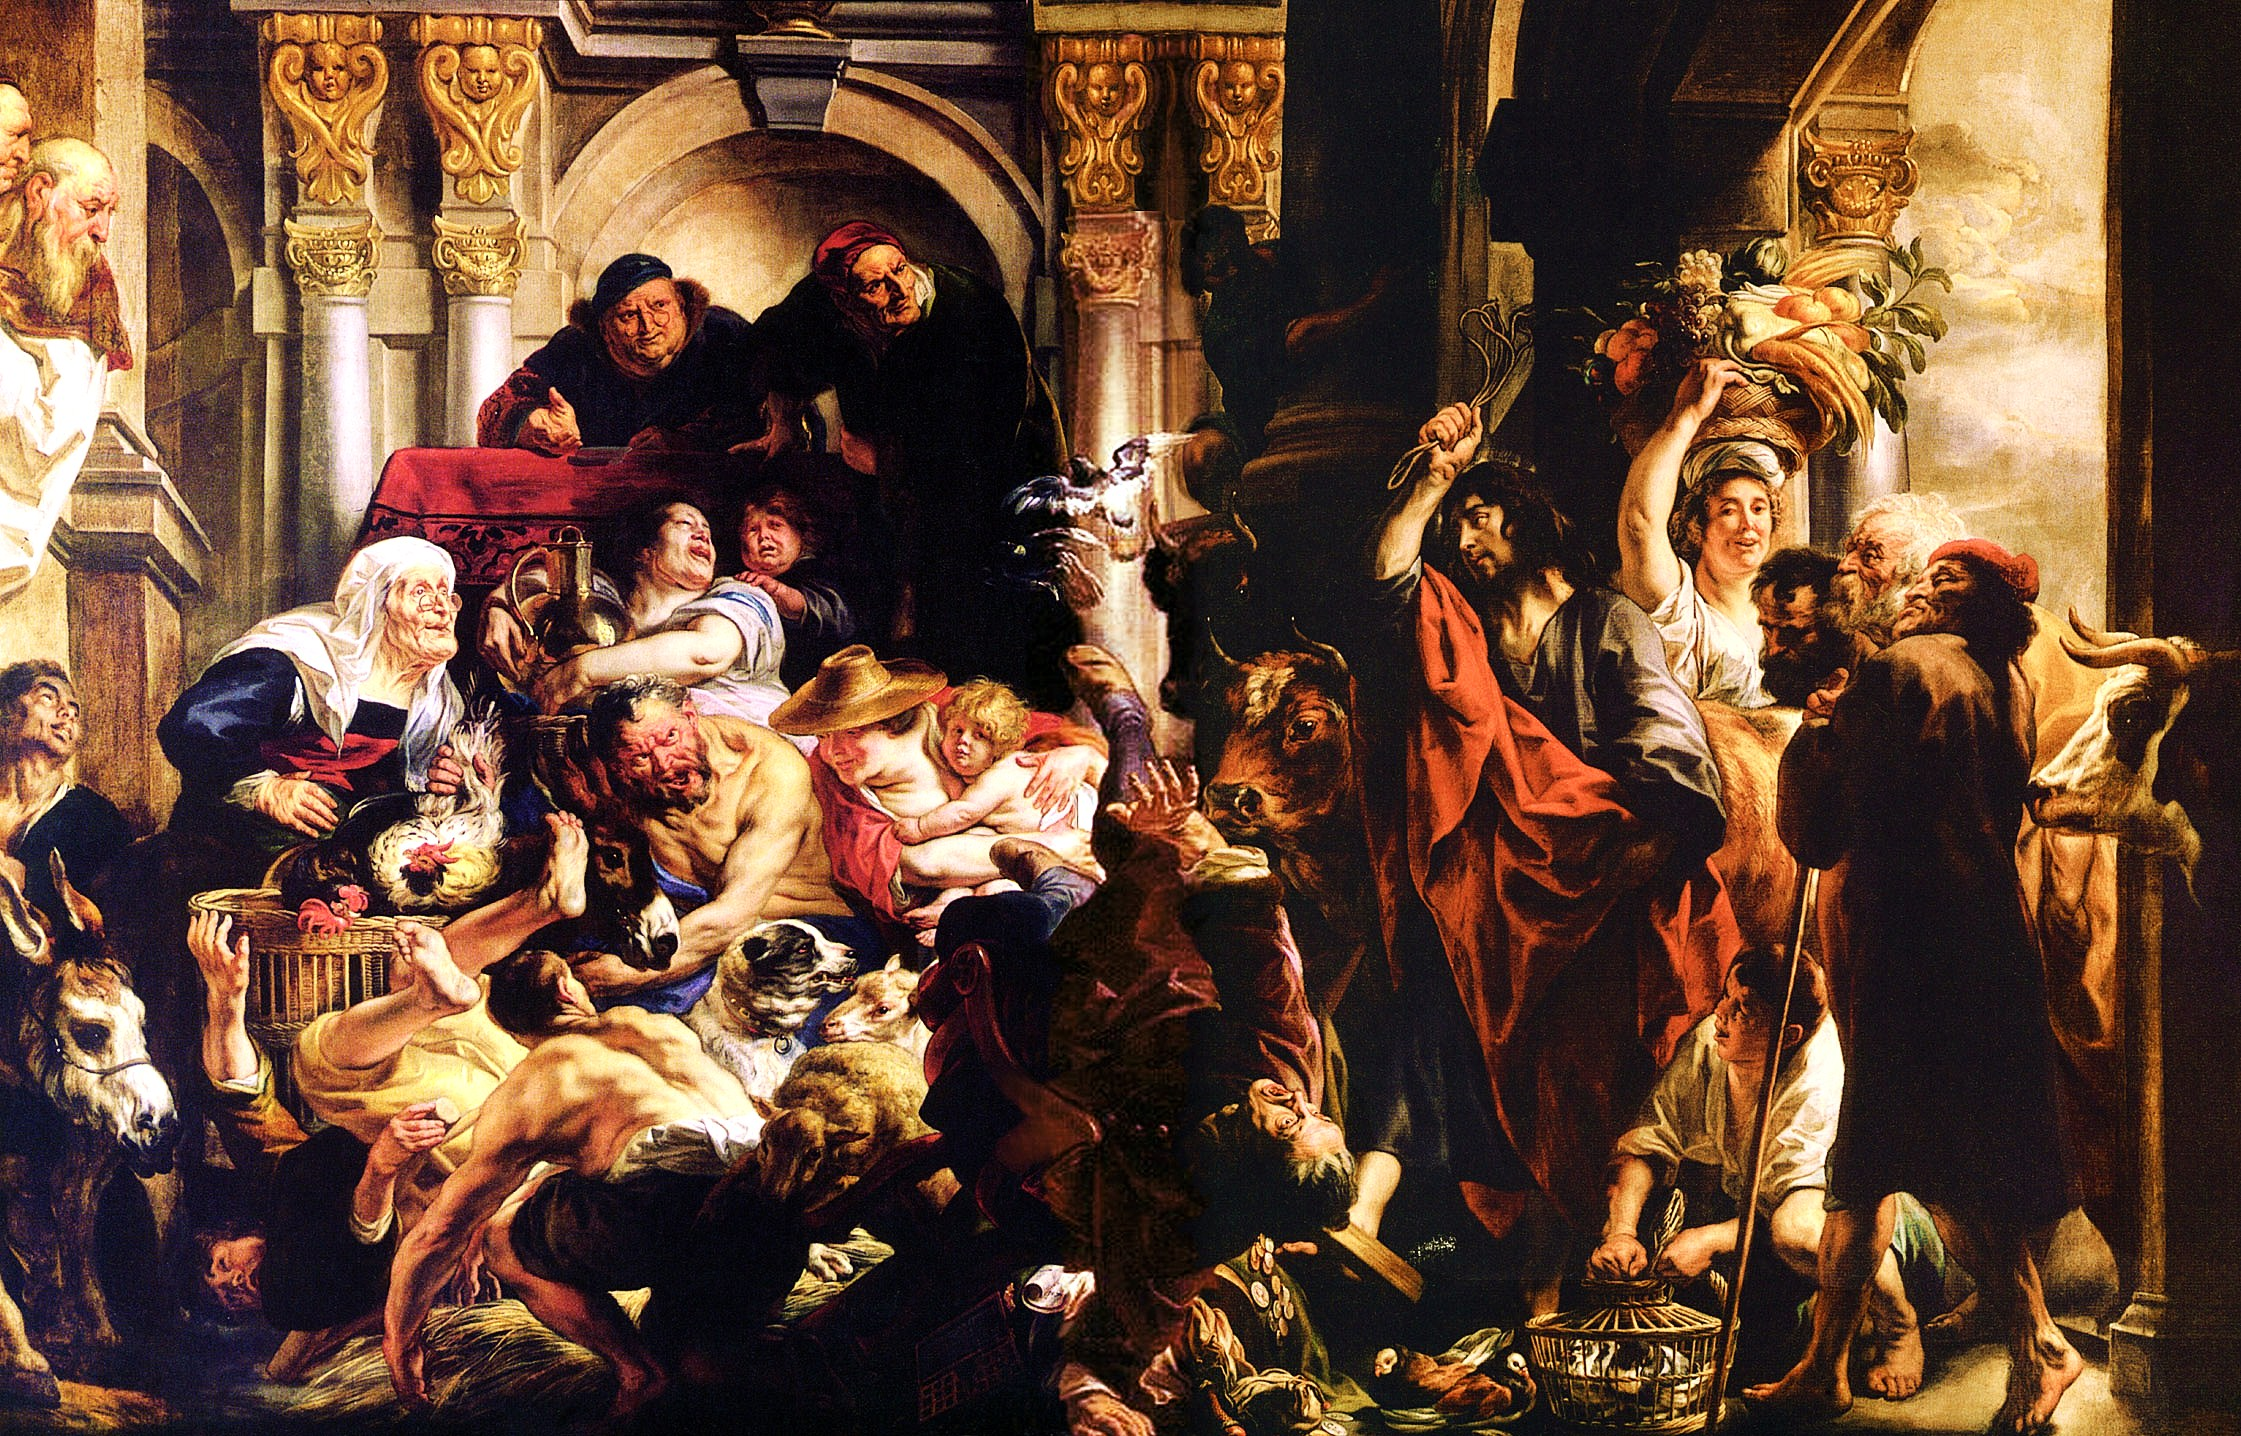 Christ Driving the Merchants from the Temple Jacob Jordaens, c. 1650